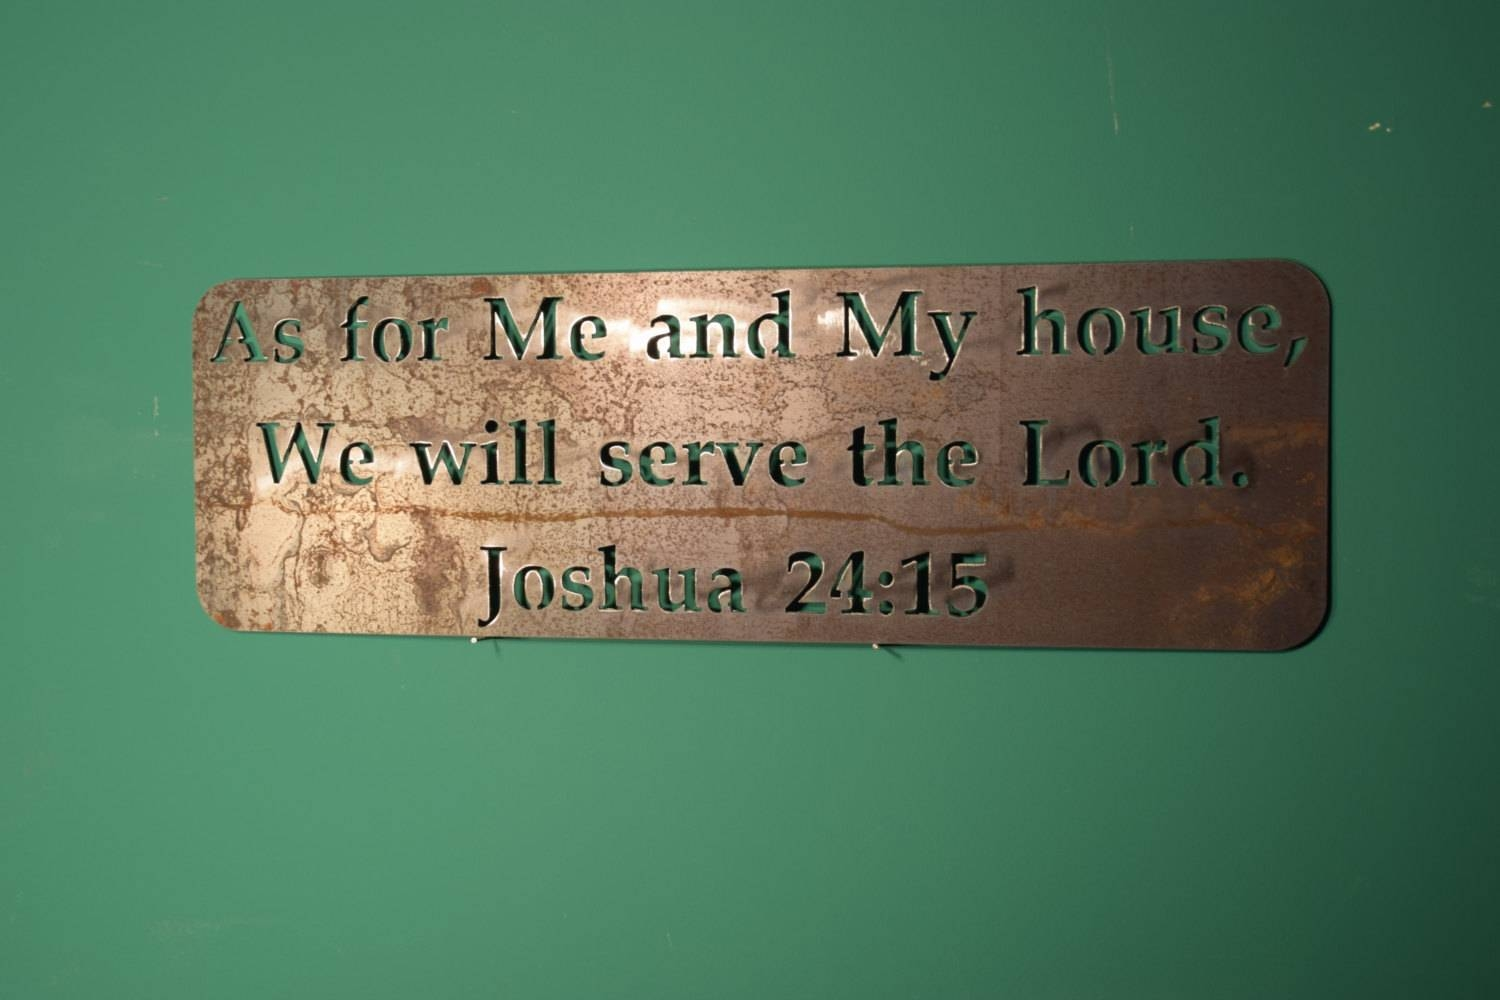 Bible Verse Wall Decor Fixer Upper Wall Decor Fixer Upper With Latest As For Me And My House Metal Wall Art (View 10 of 20)